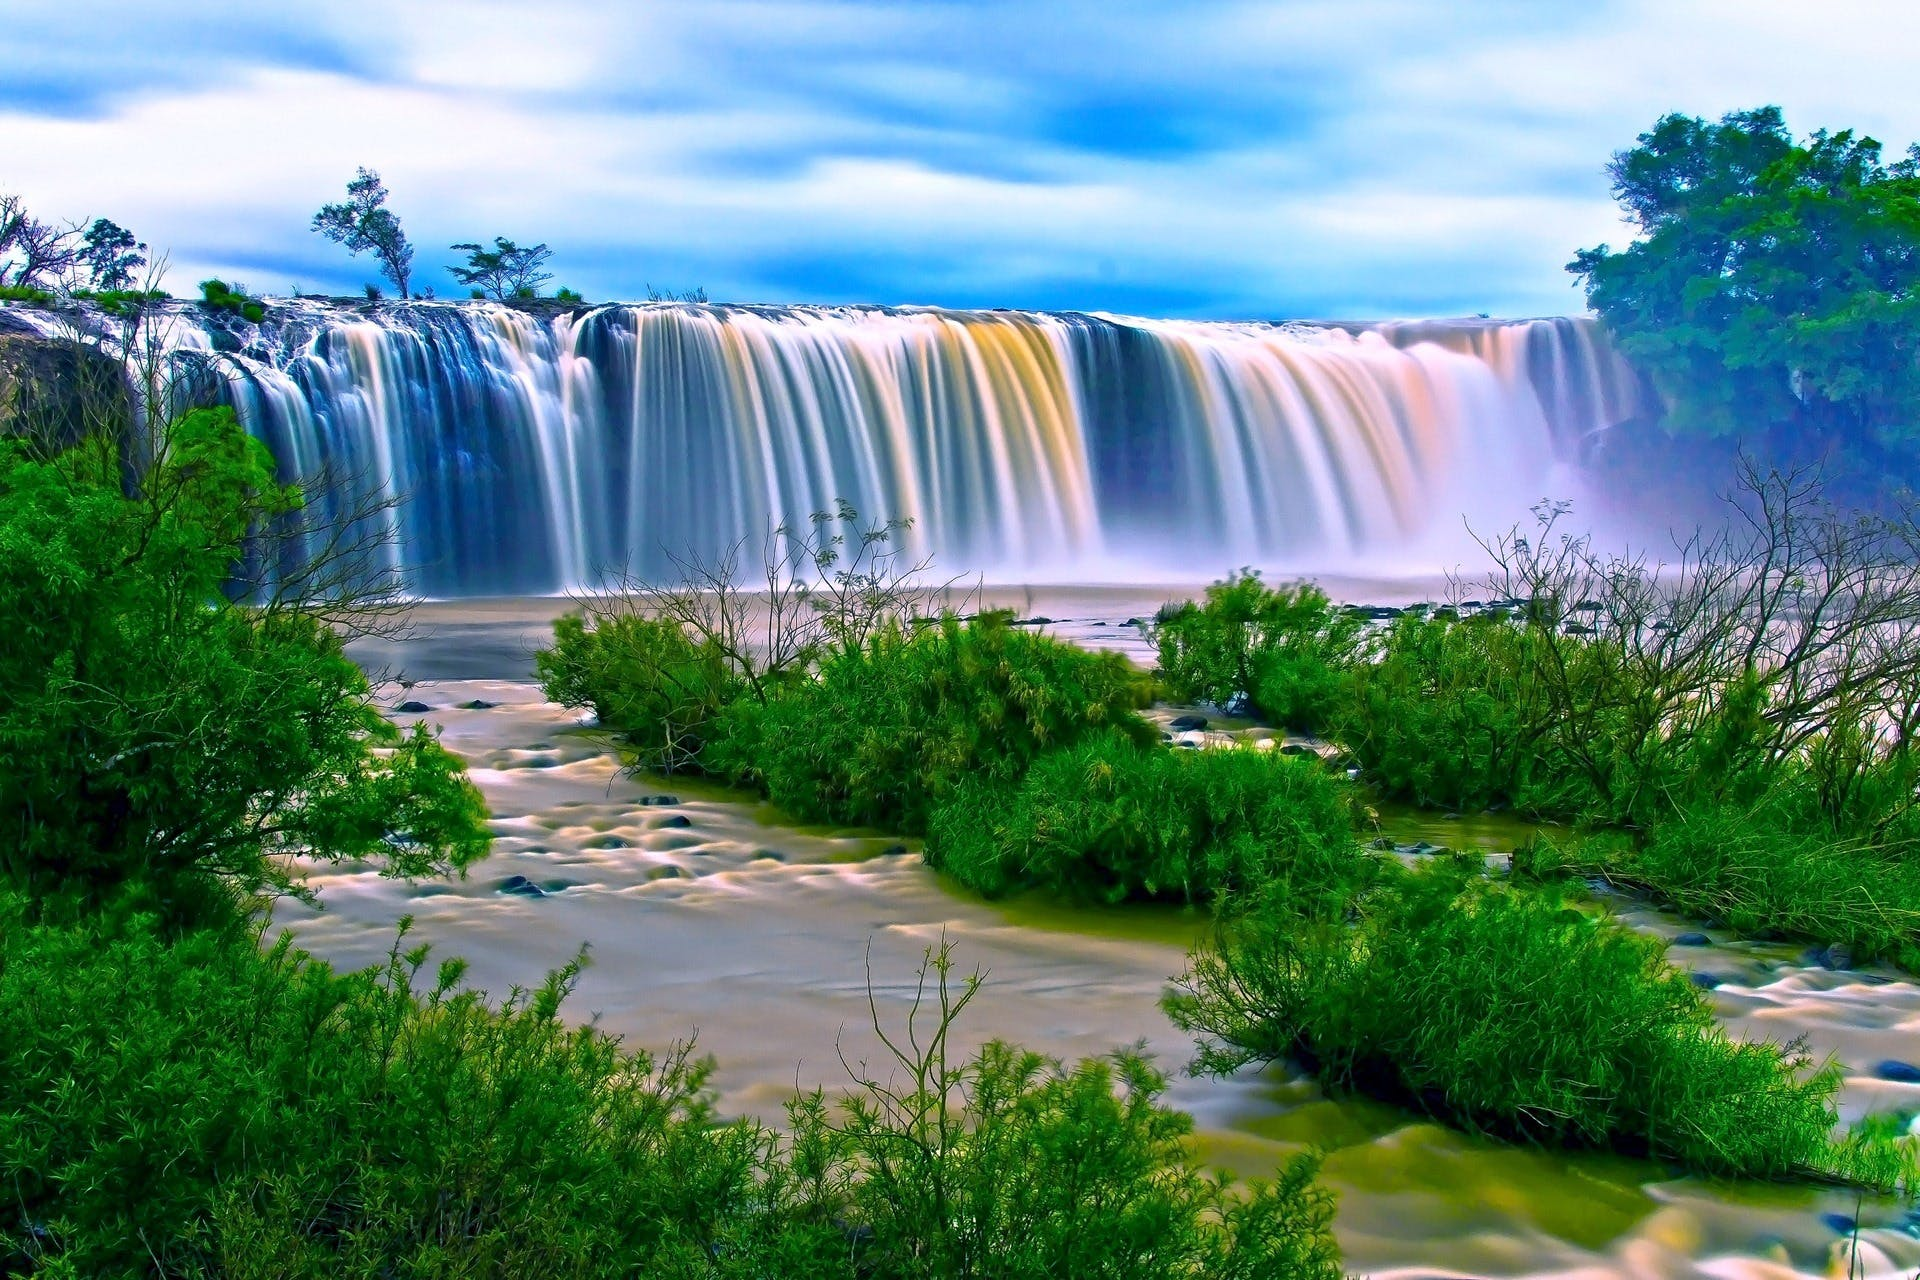 nature backgrounds hd. simple nature water falls surrounding green grass during daytime with nature backgrounds hd